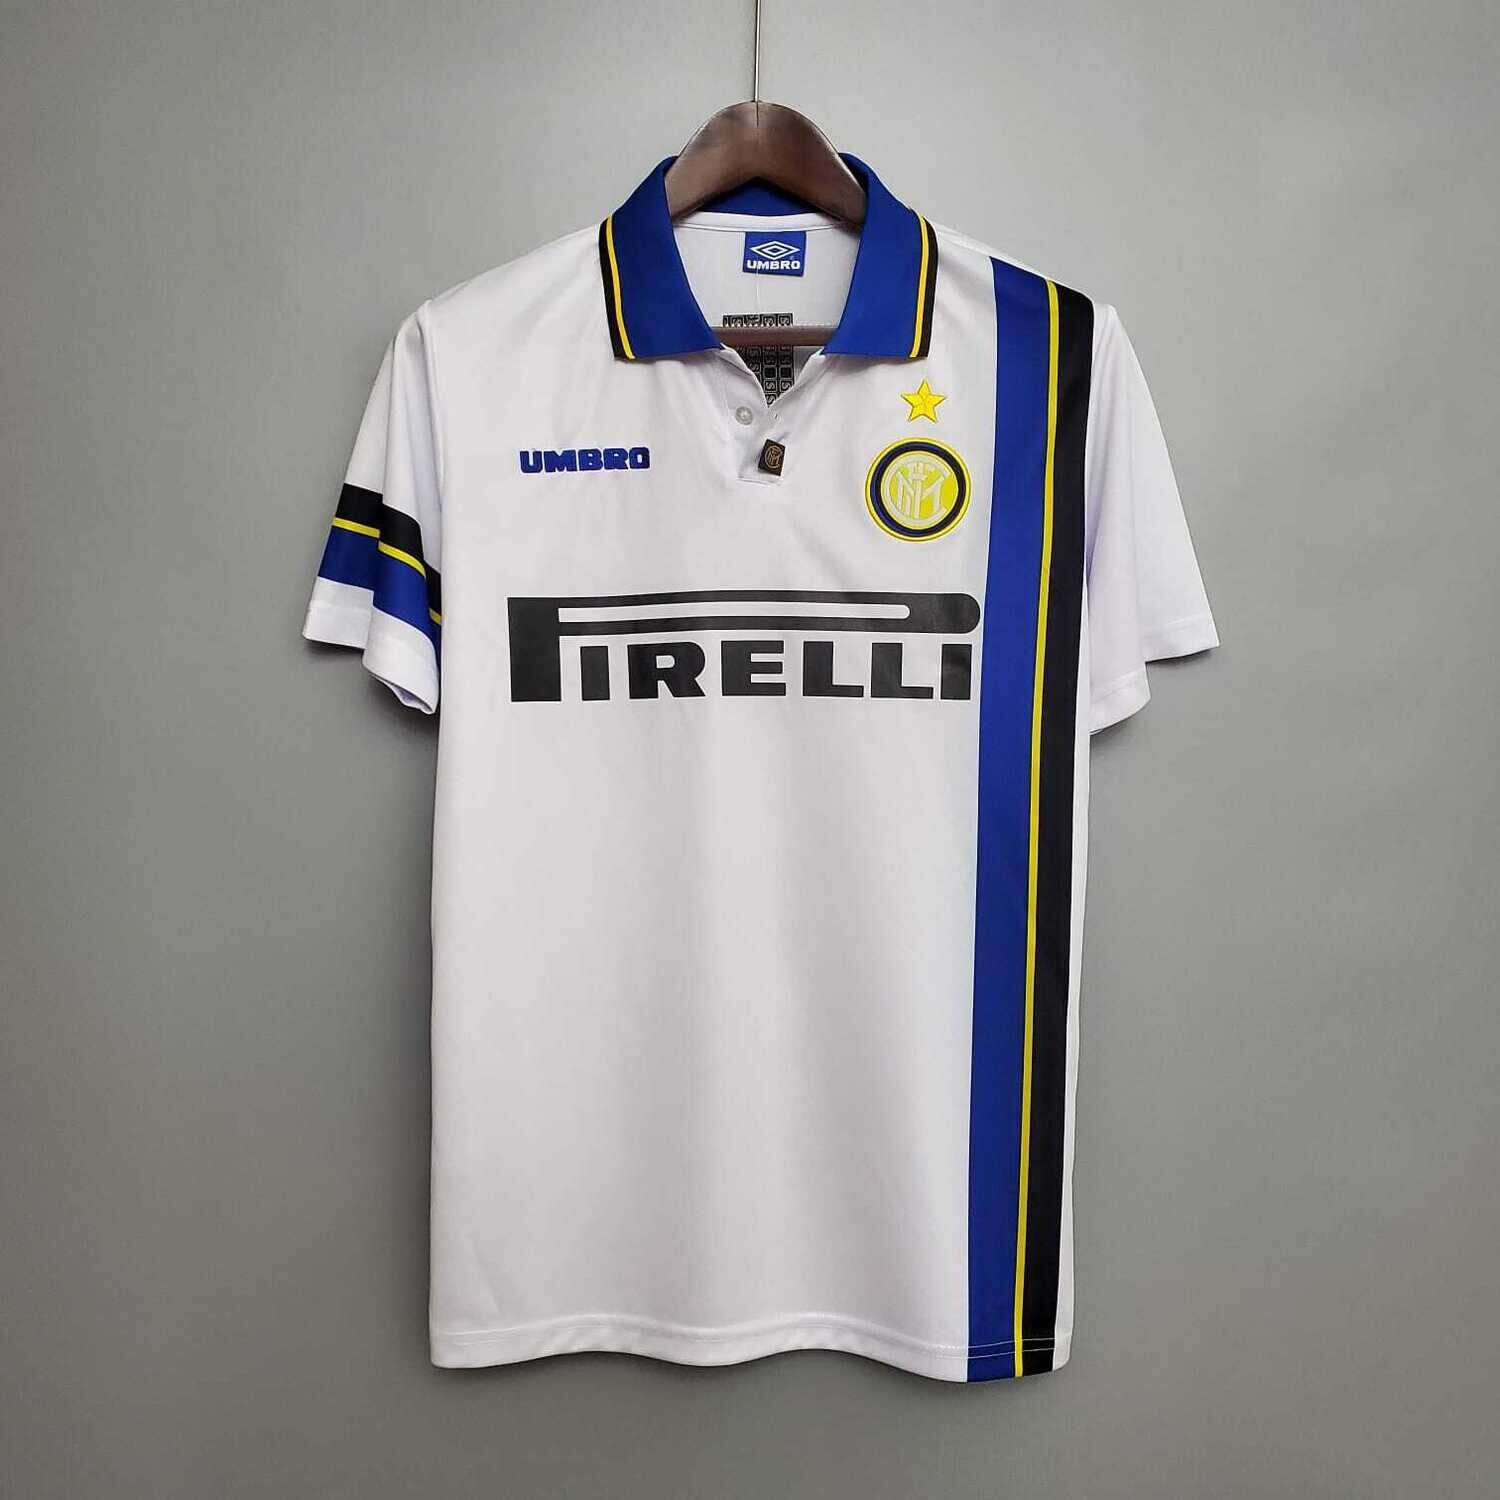 Inter Milan 1997-98 Retro Away Jersey [Pre-paid Only]